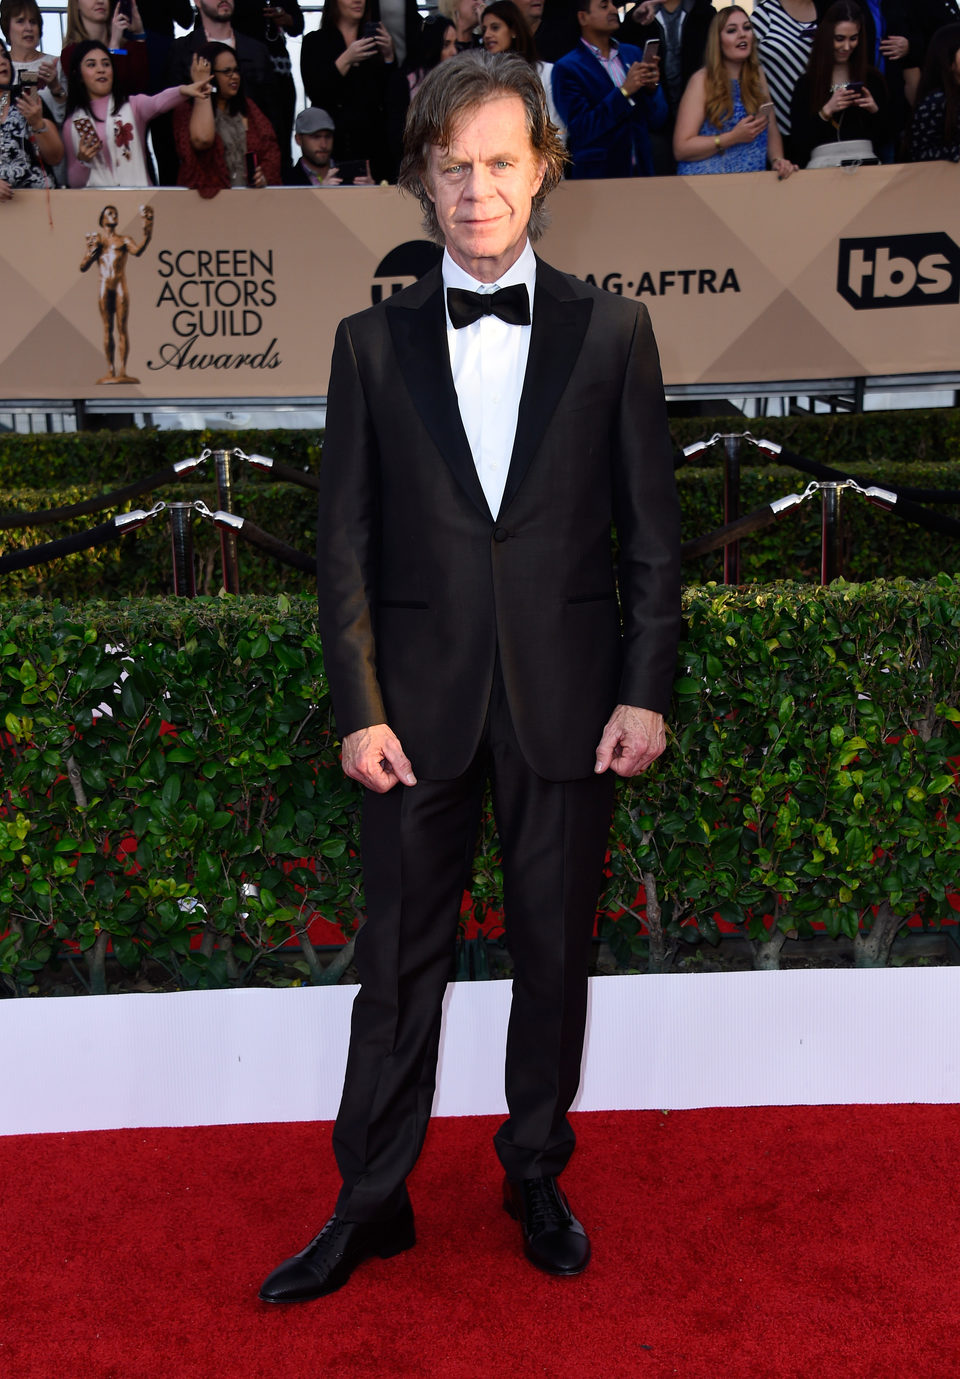 William H. Macy in red carpet of SAG Awards 2016